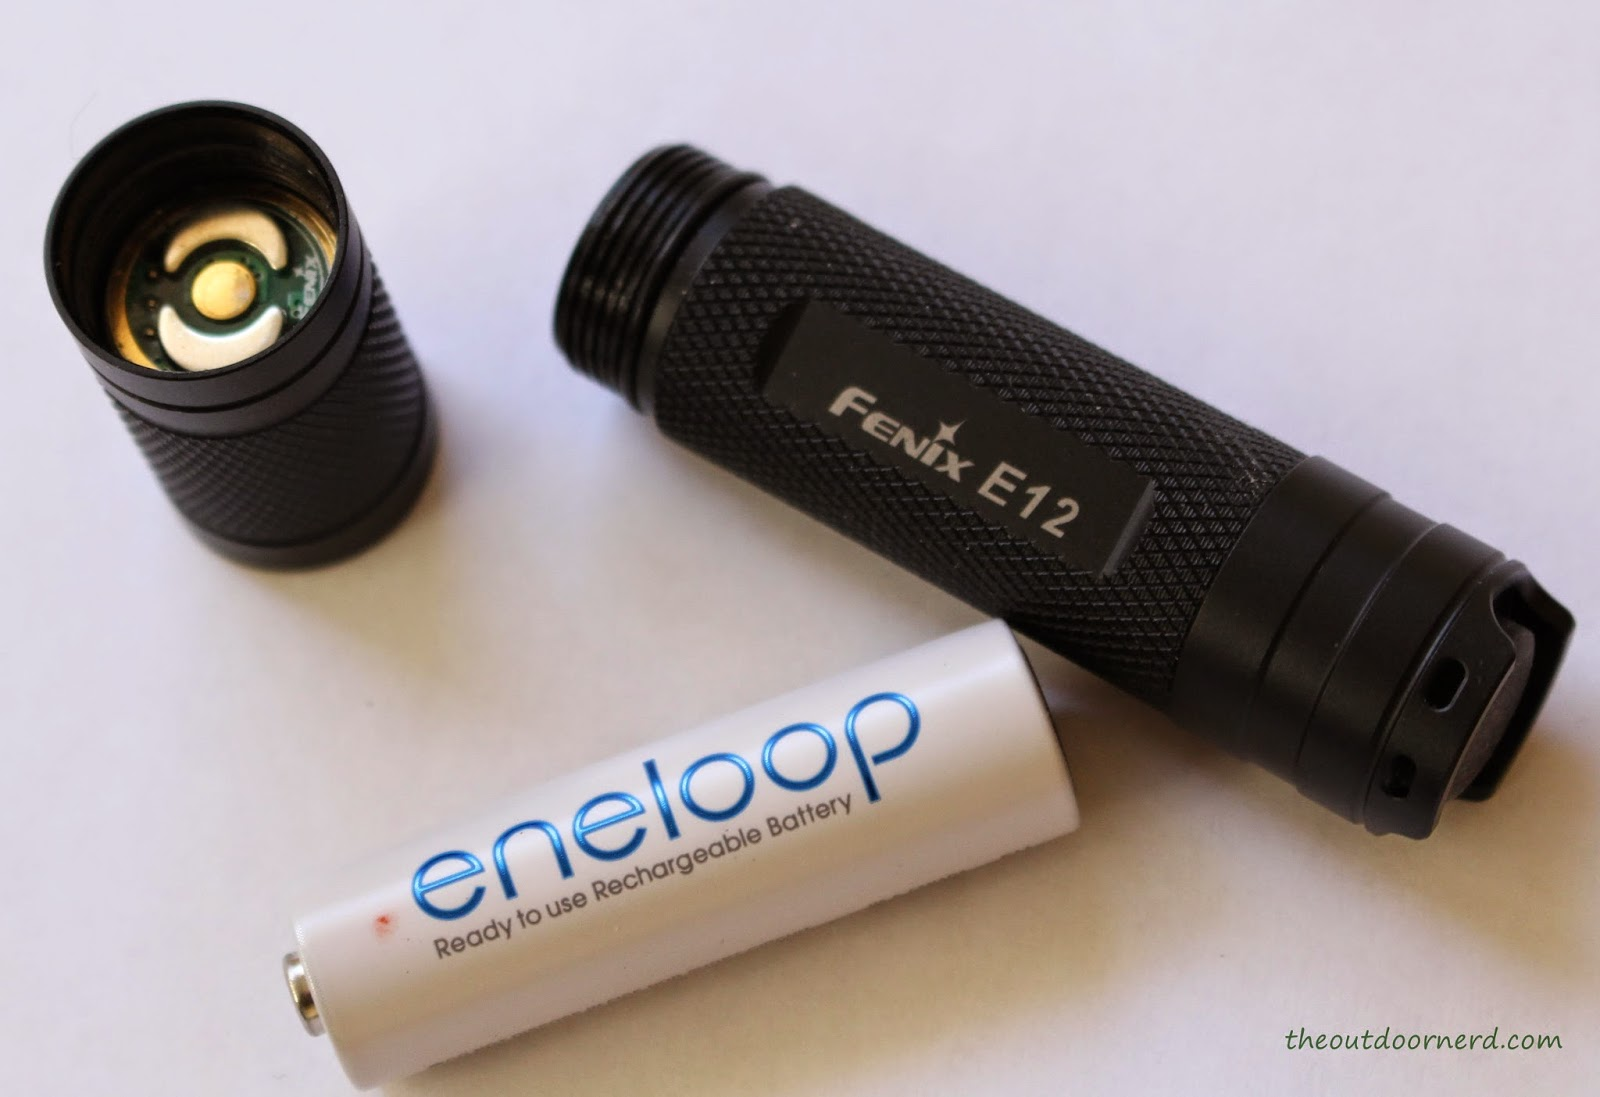 Fenix E12 1xAA EDC Flashlight Product Image 6